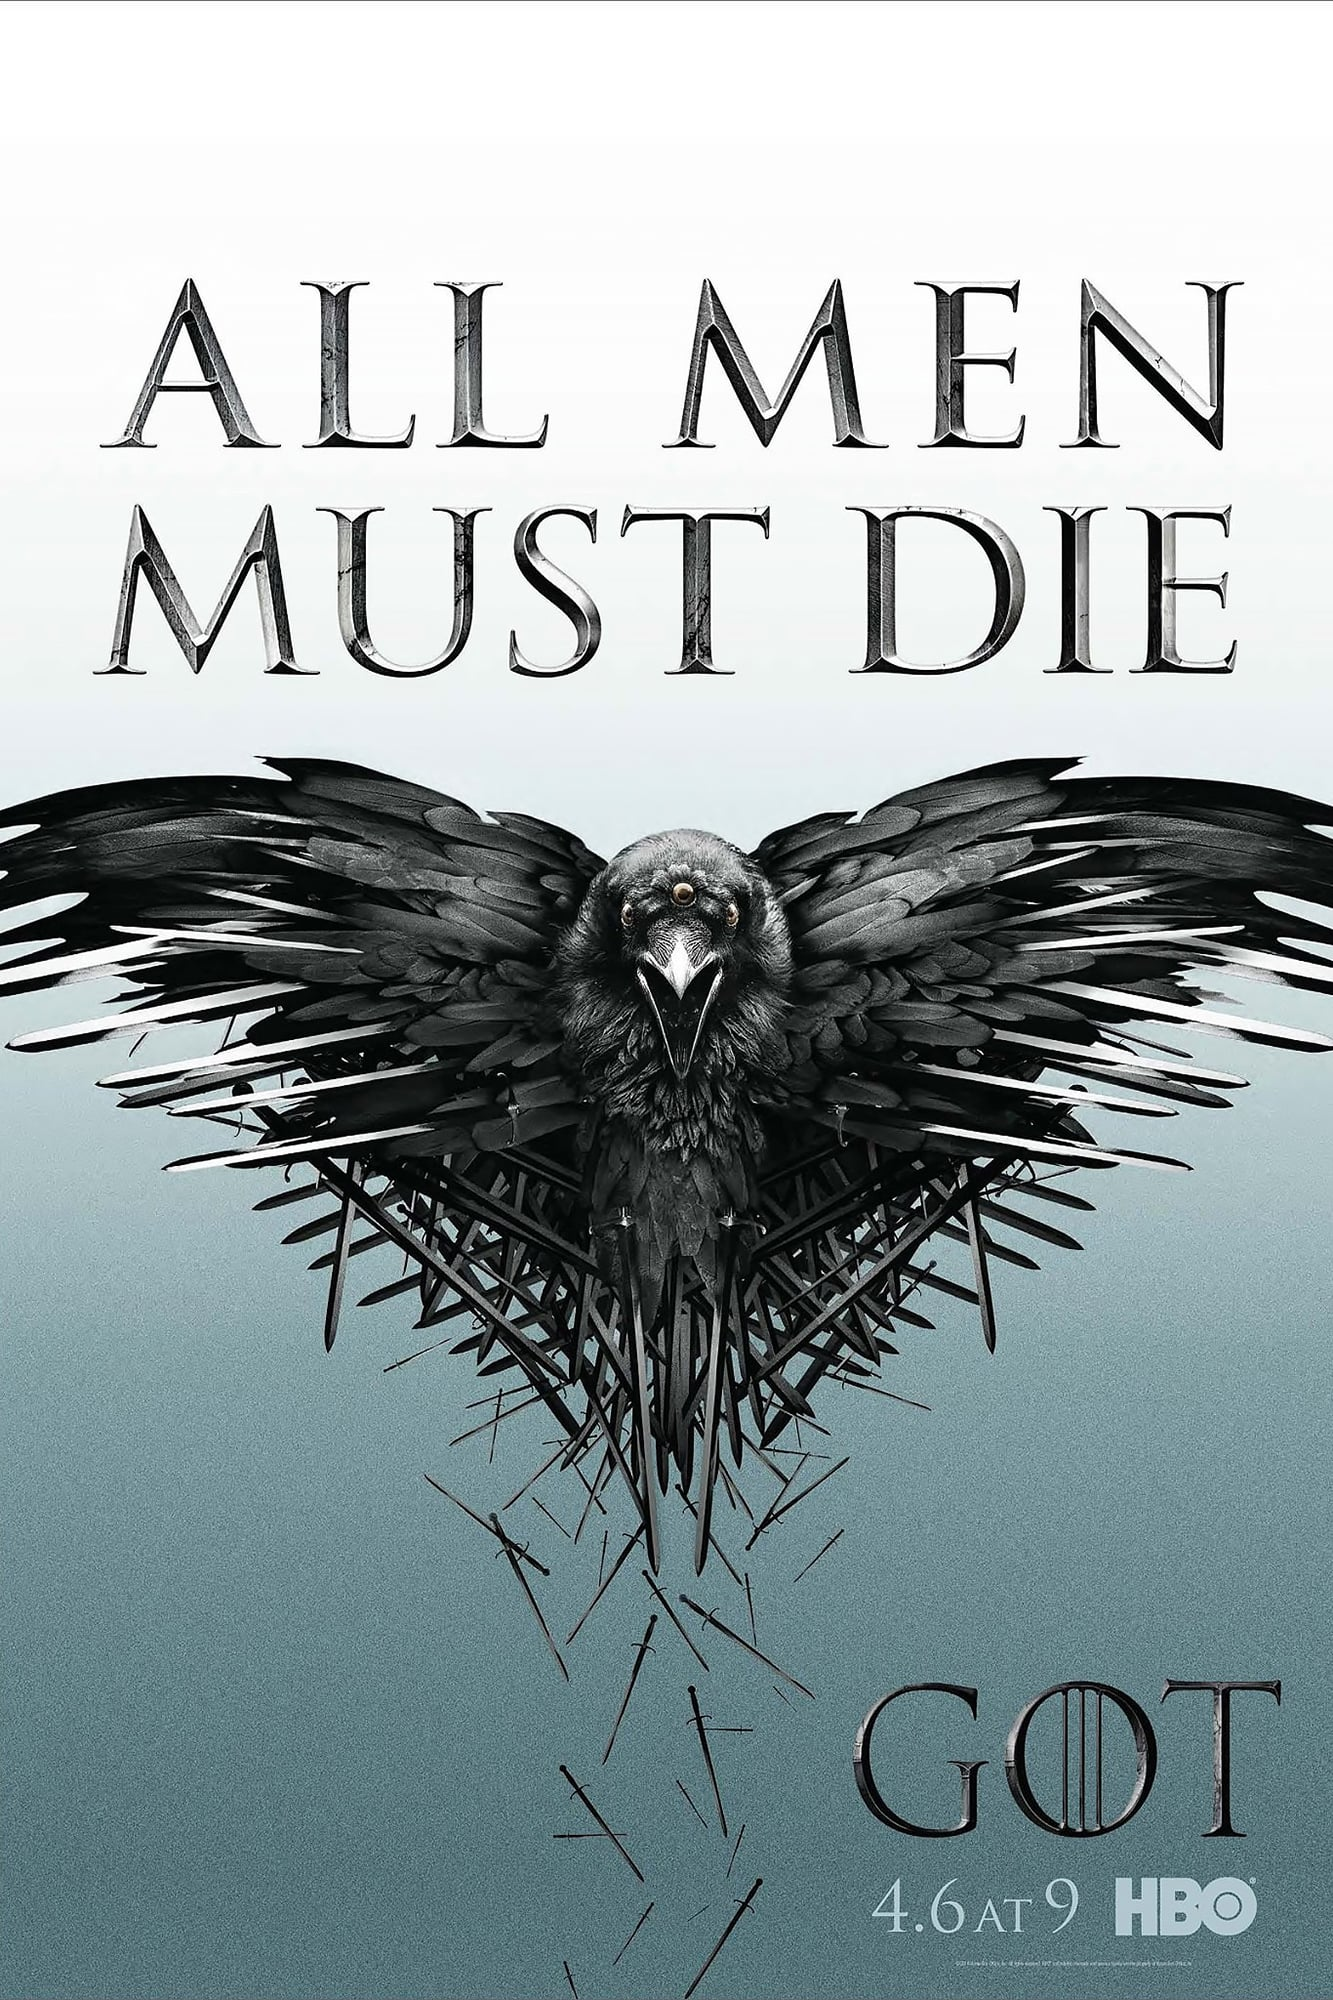 game of thrones poster high quality HD printable wallpapers season 2 all men must die crow animated cartoon